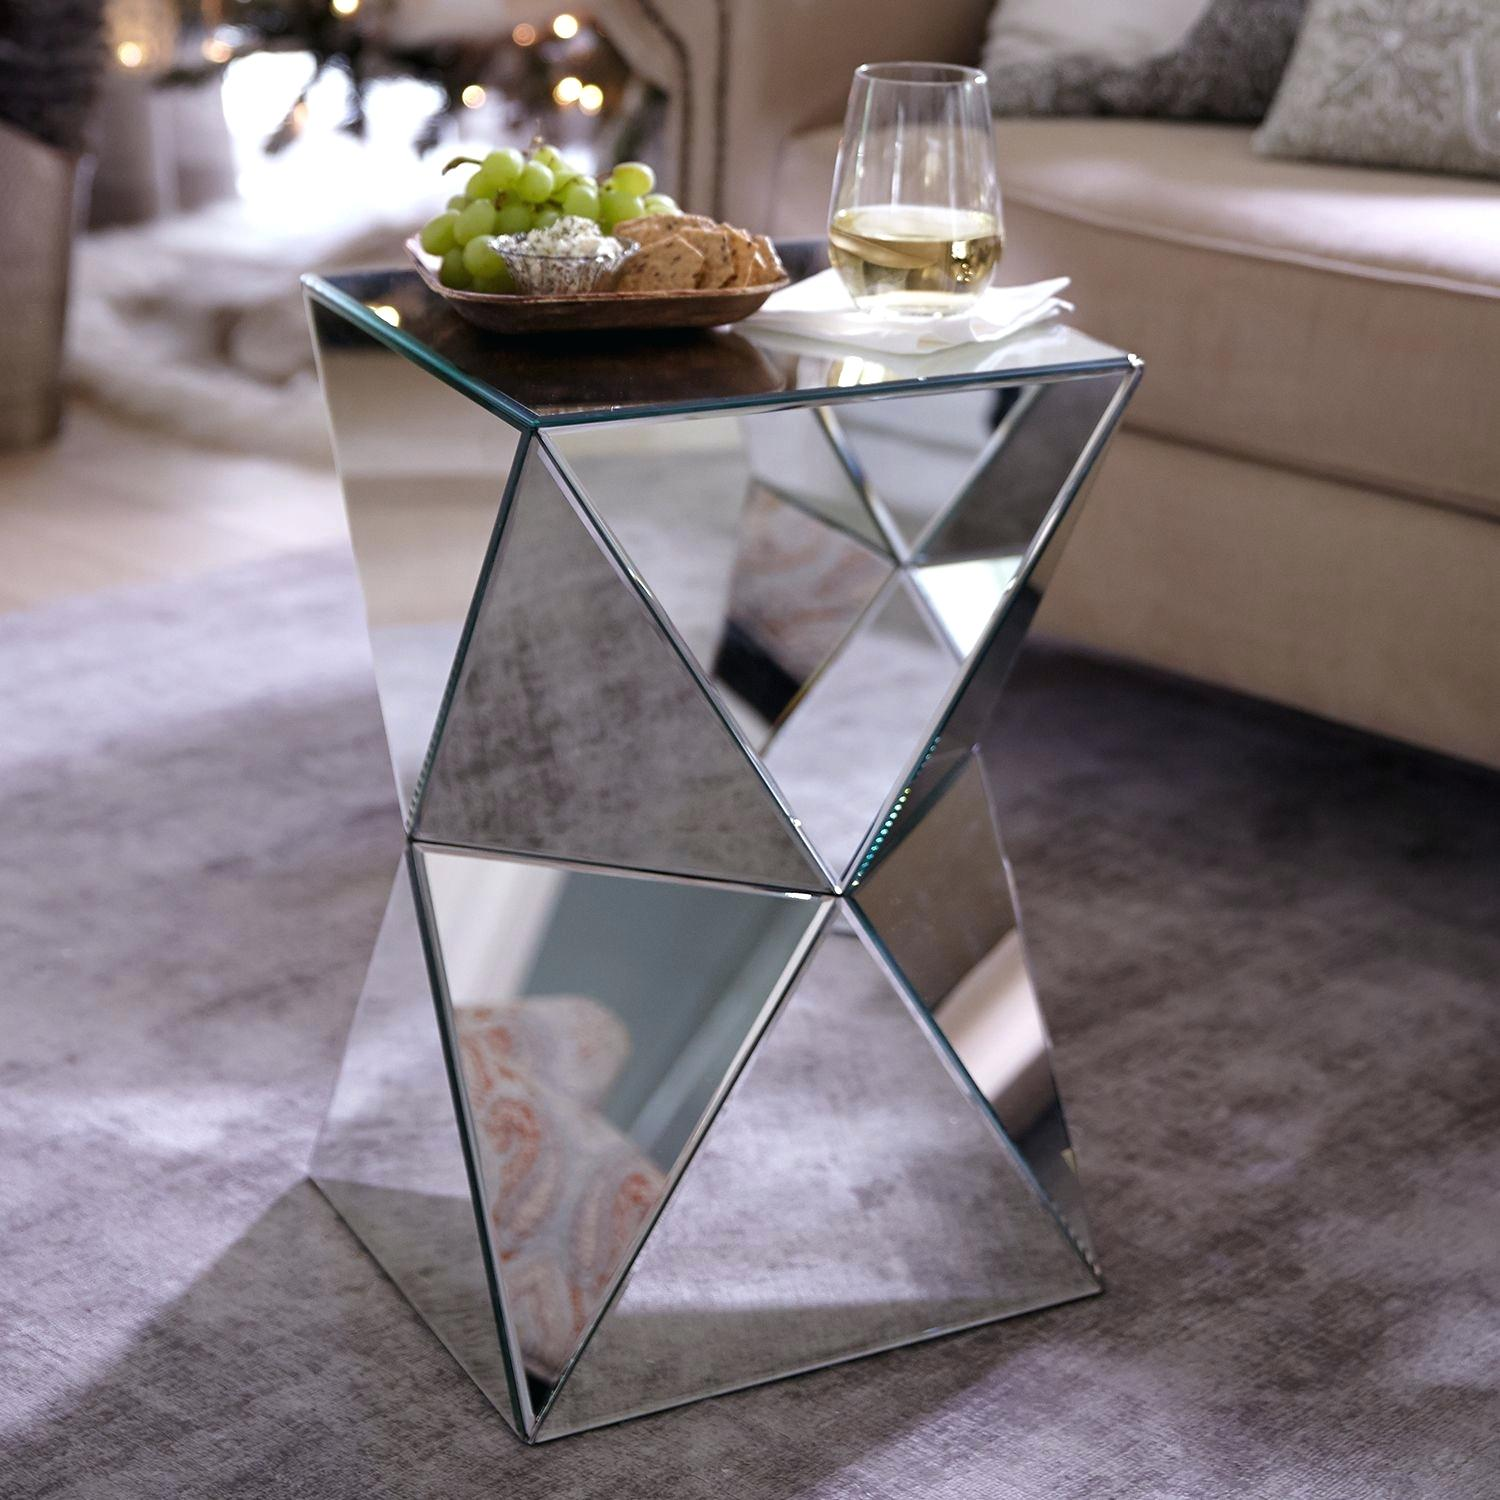 diamond mirrored accent table zoom pier tables sytecorp circular glass side round dining for lamp small dresser lamps half moon rustic wine rack home ornaments front hall one